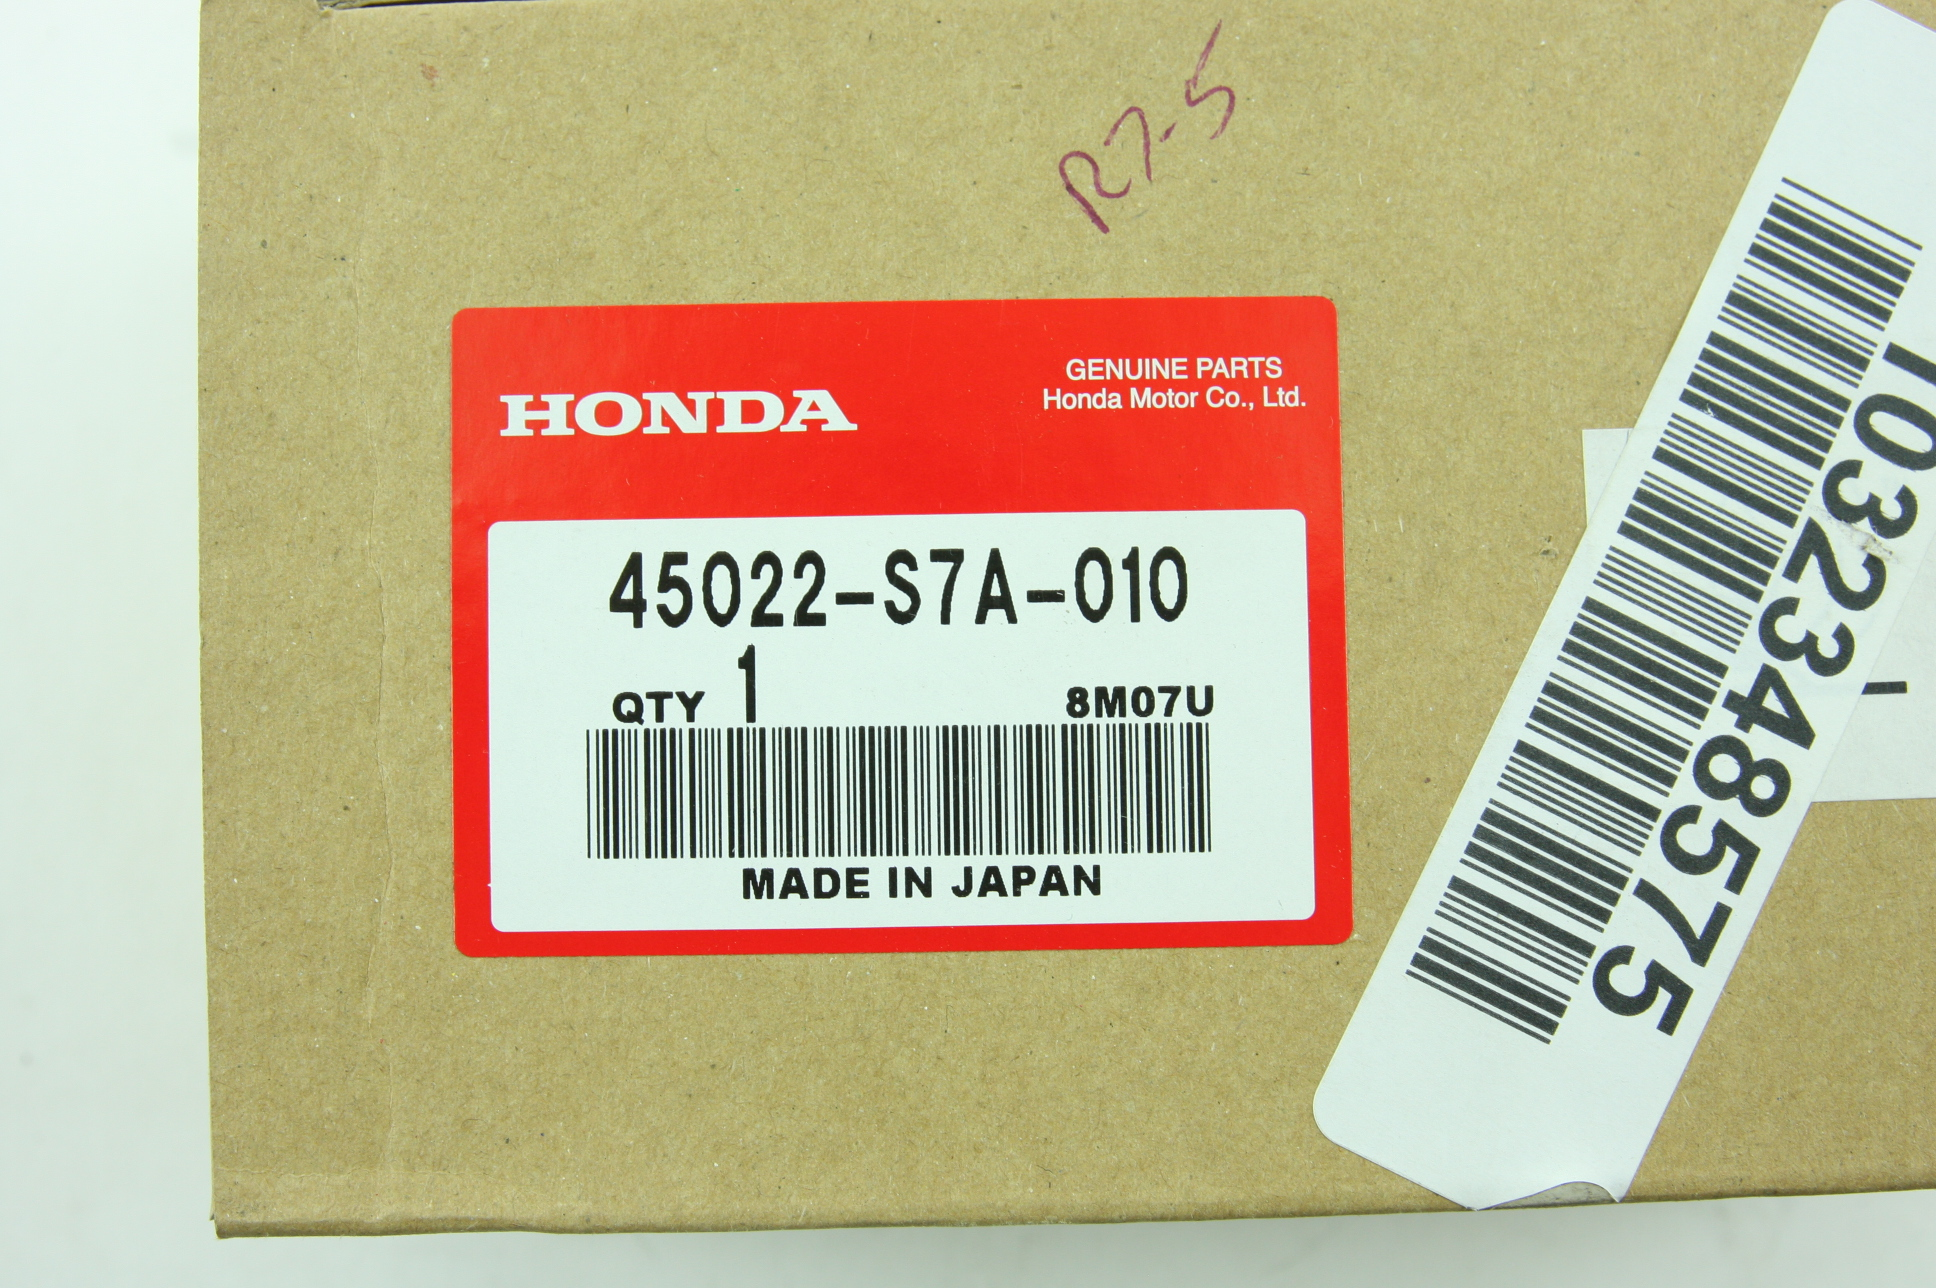 *New OEM 45022-S7A-010 Genuine Honda Front Brake Pads Set Civic 3Dr SI Acura RSX - image 2